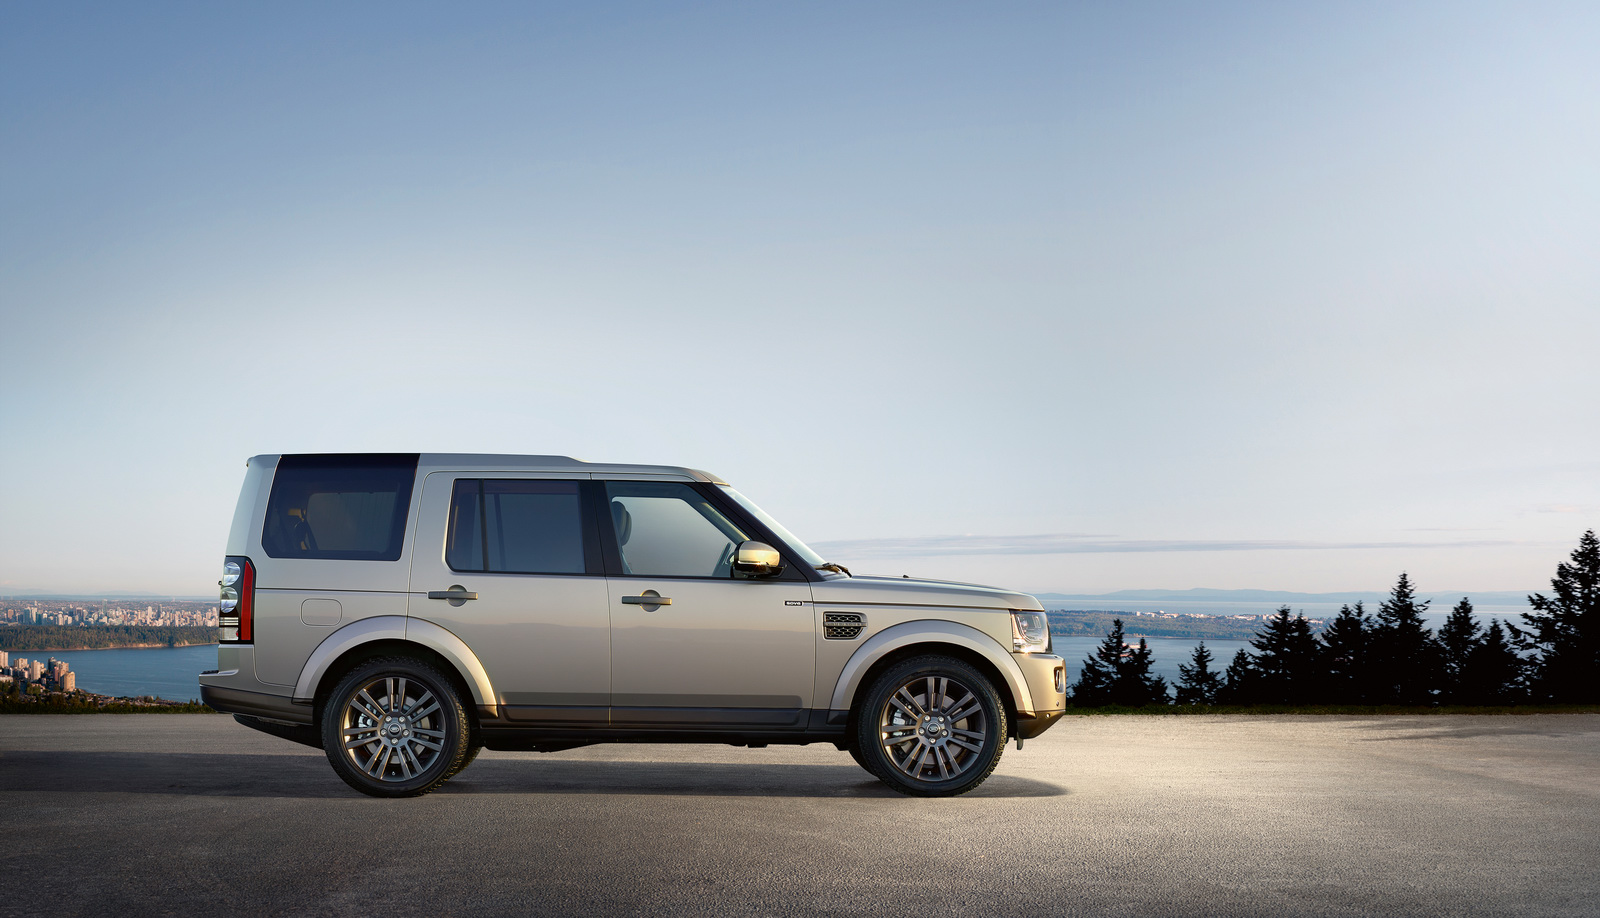 land rover recalls discovery 4 over glass roof flying off risk. Black Bedroom Furniture Sets. Home Design Ideas